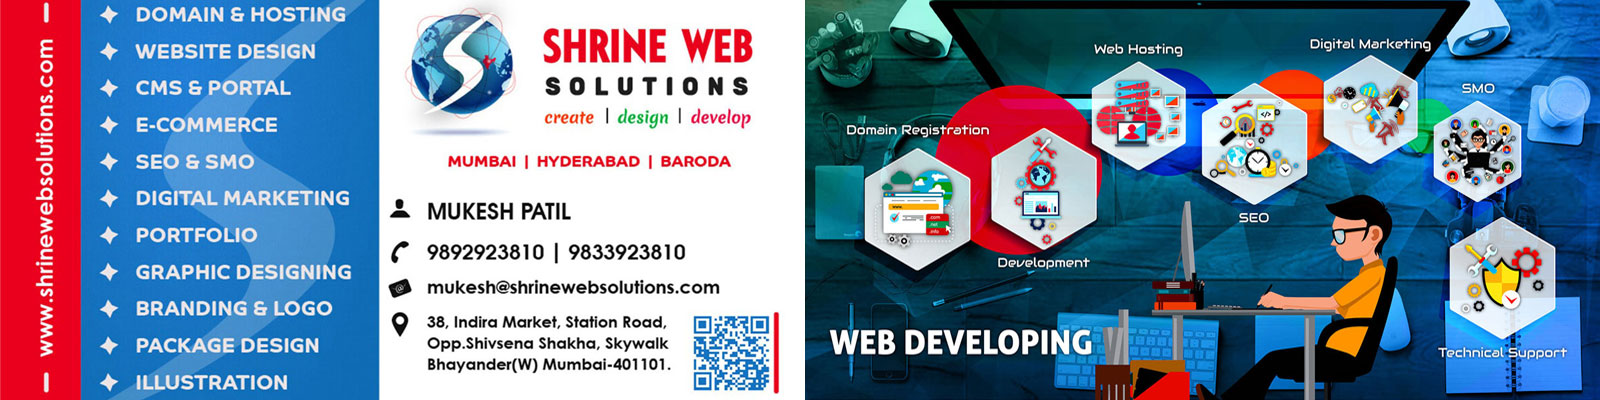 shrinewebsolutions2